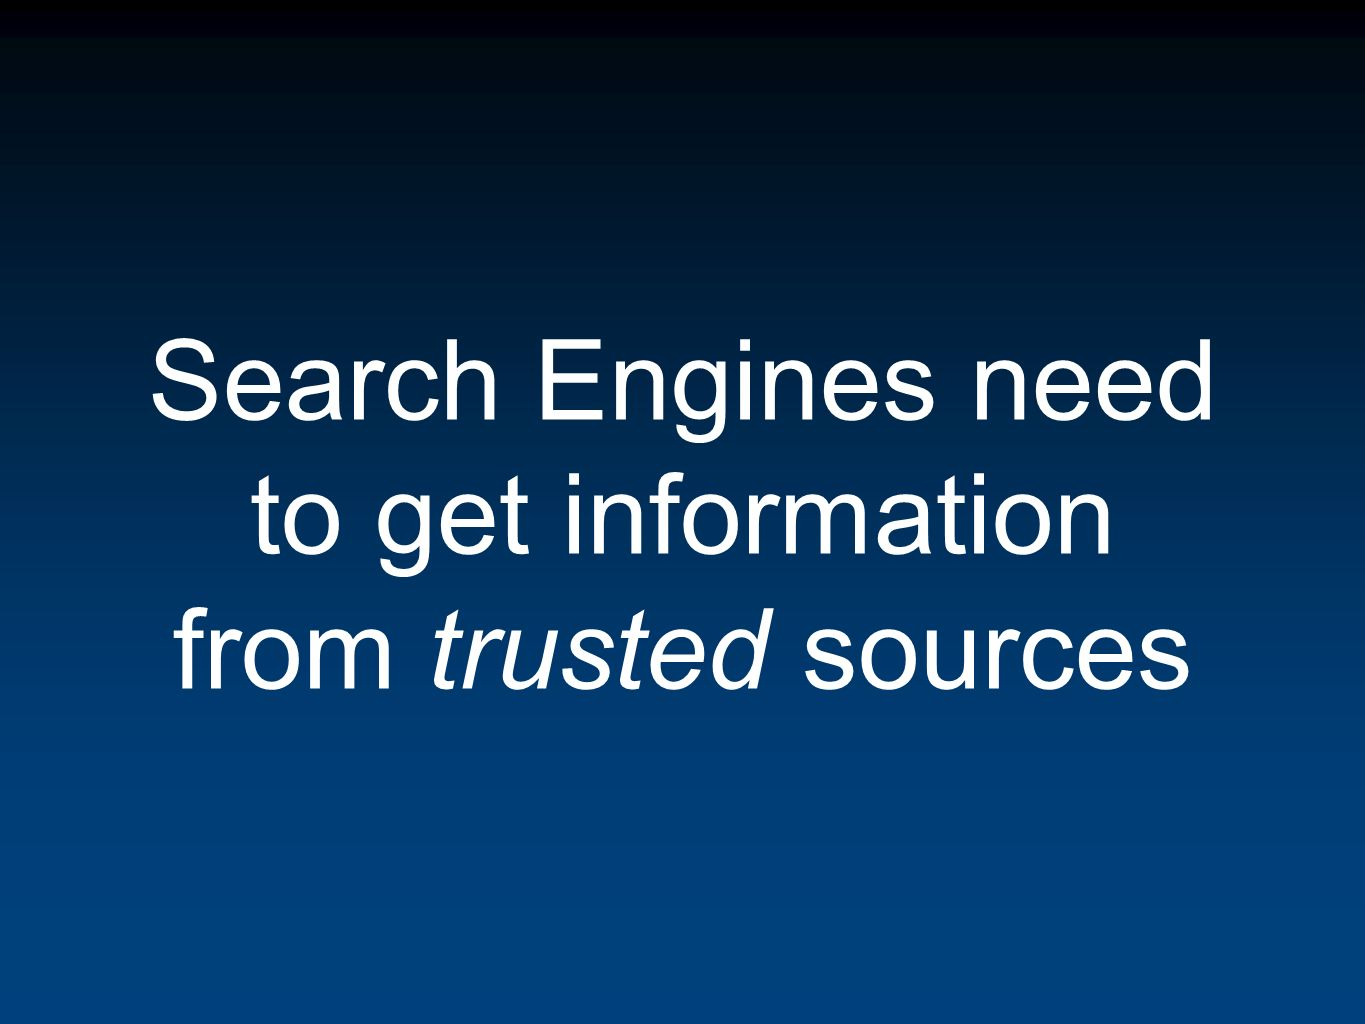 Search Engines need to get information from trusted sources